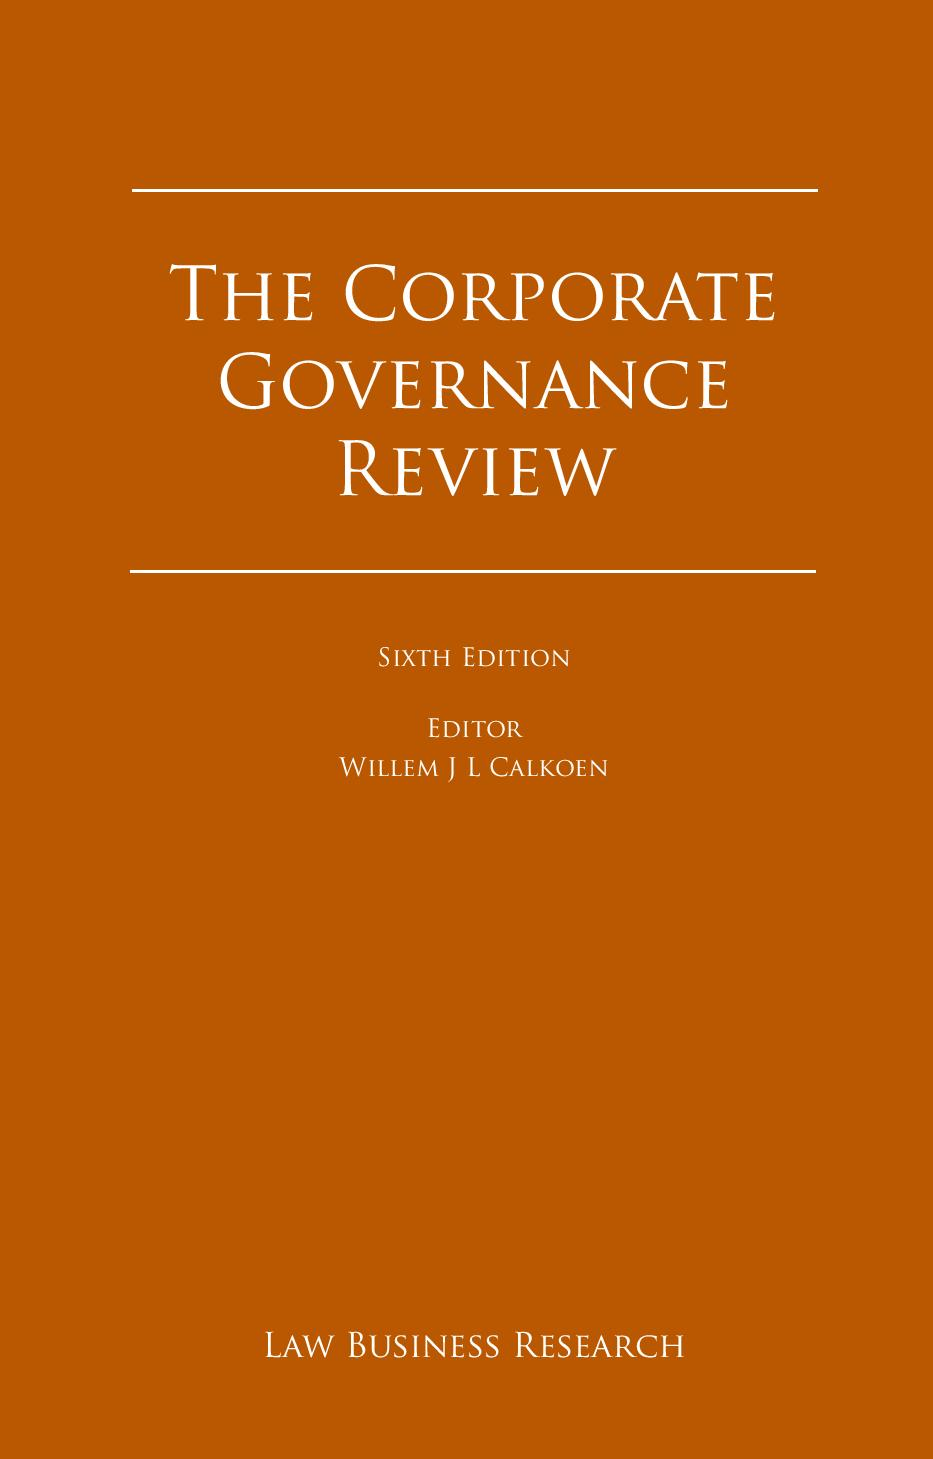 The Corporate Governance Review - Cyprus 2016